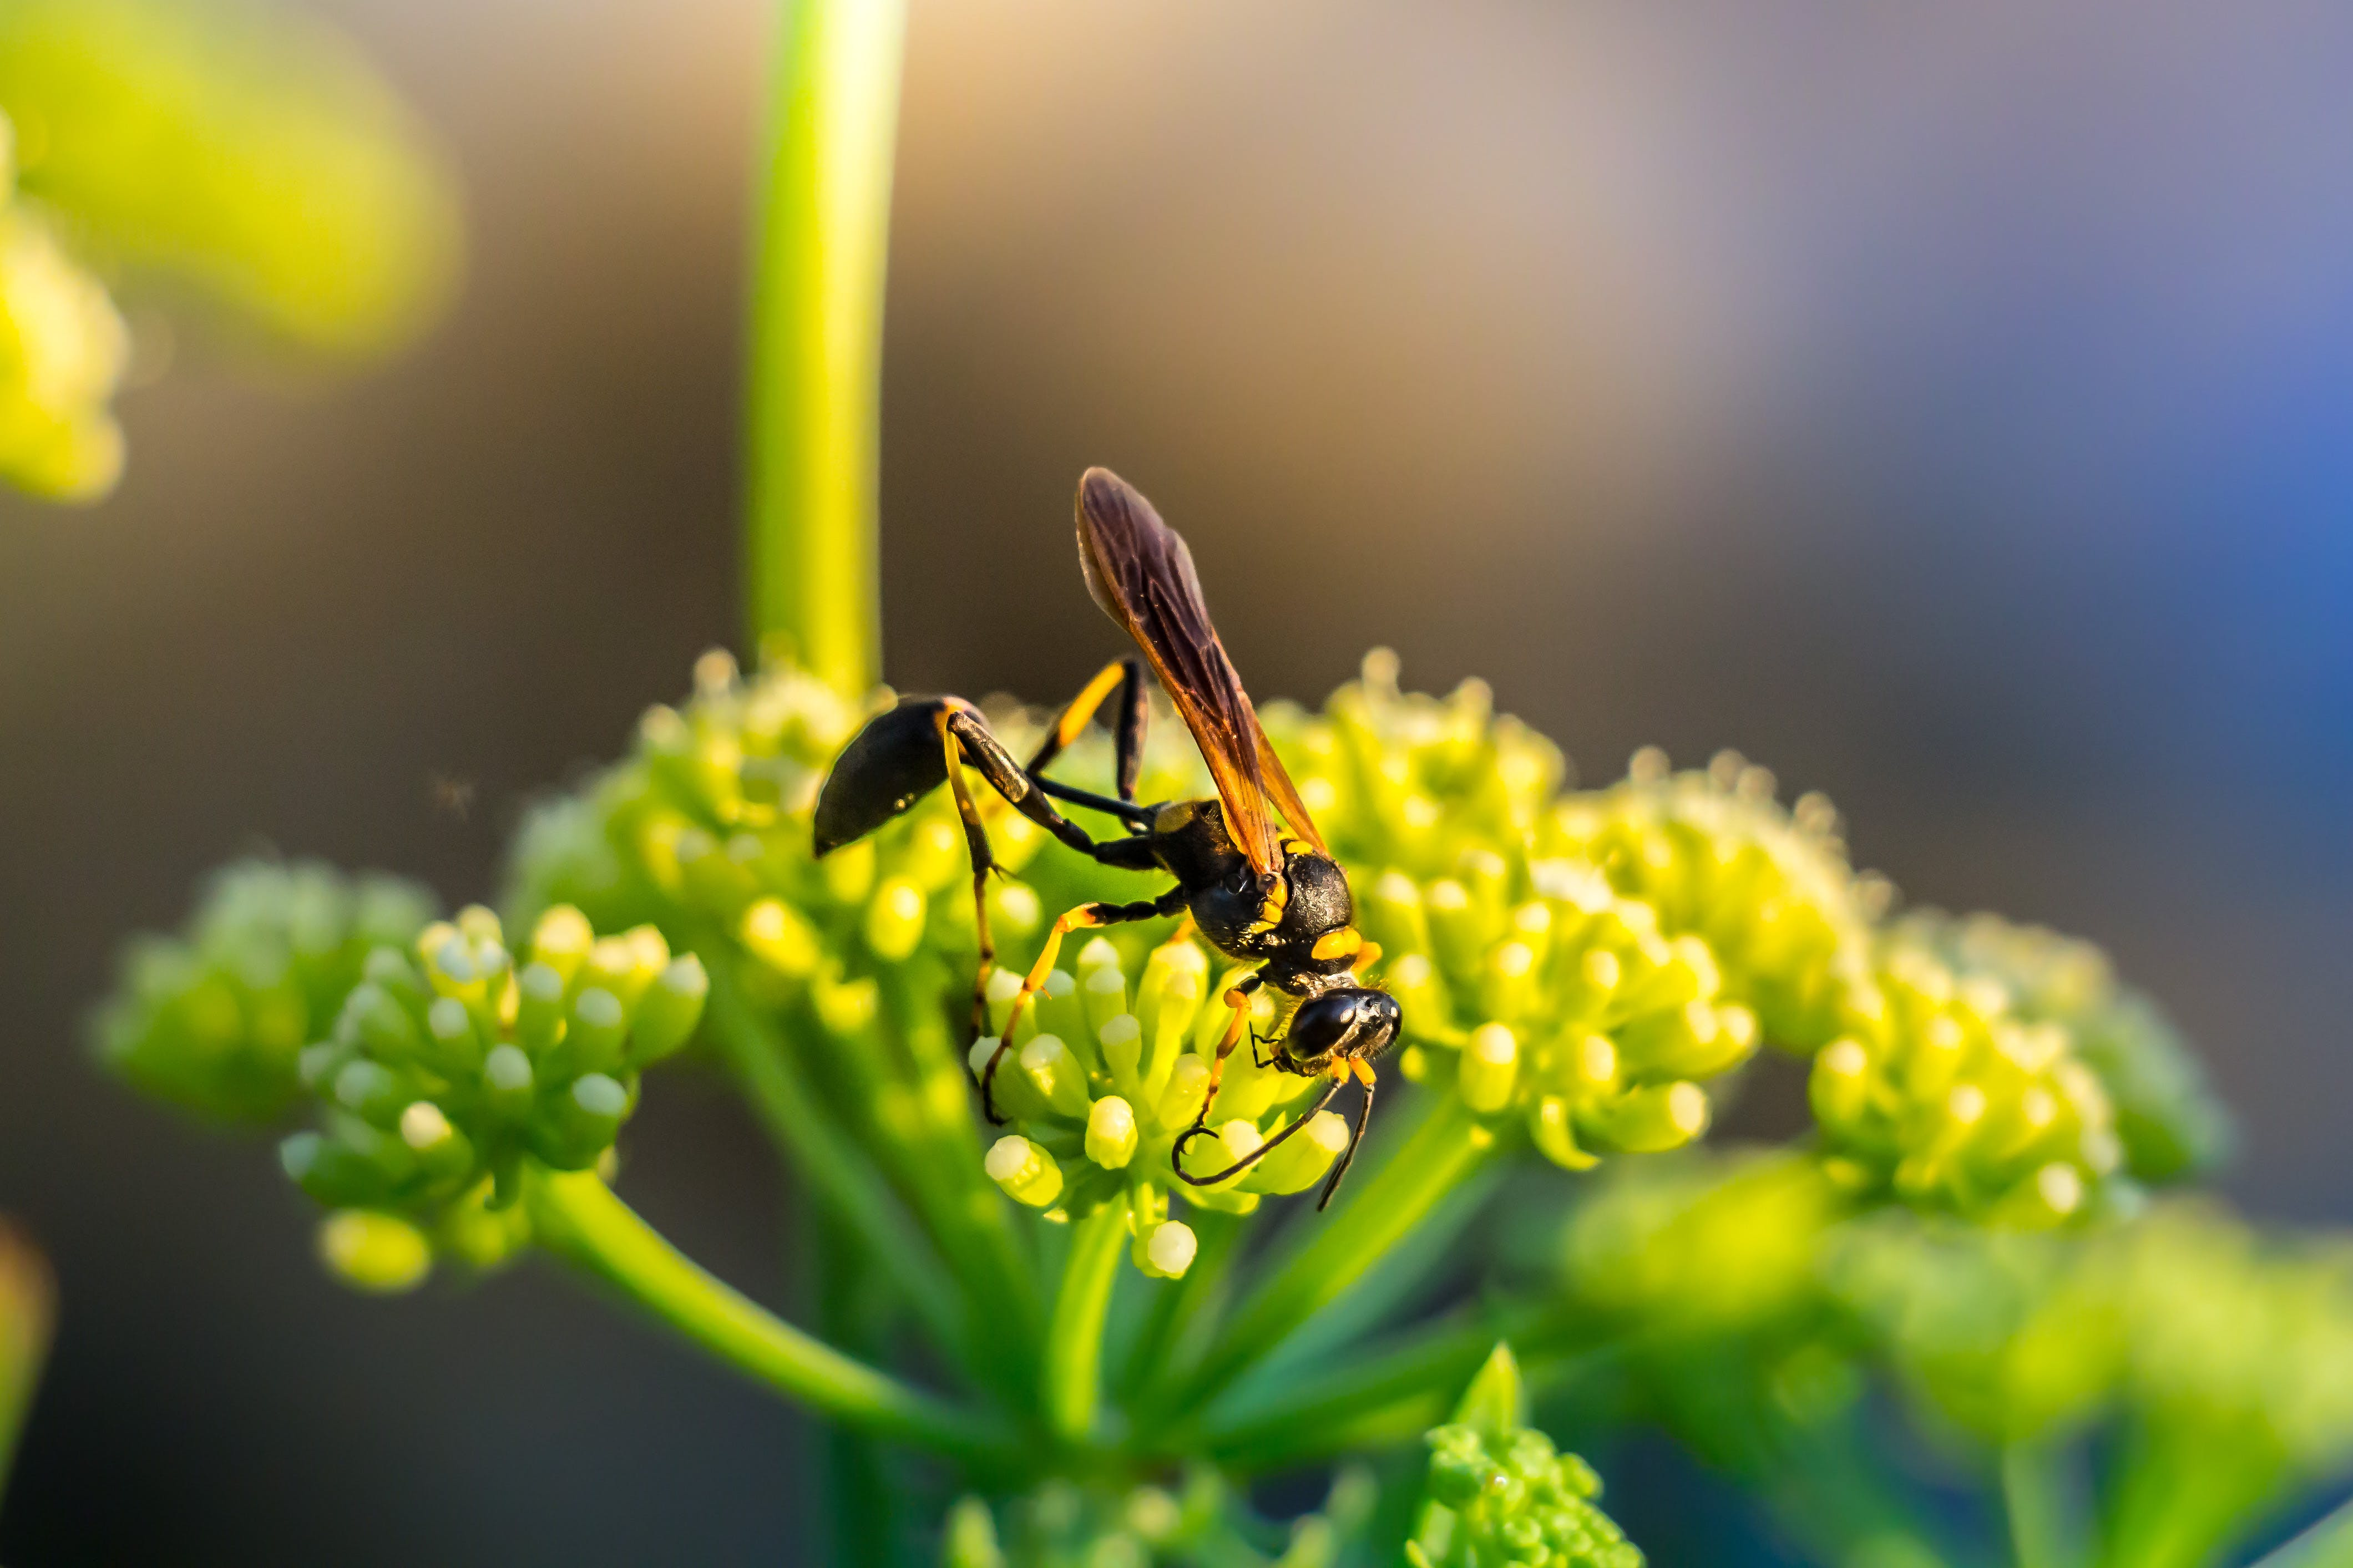 Selective Focus Photo Black and Yellow Mud Dauber on Green Plant